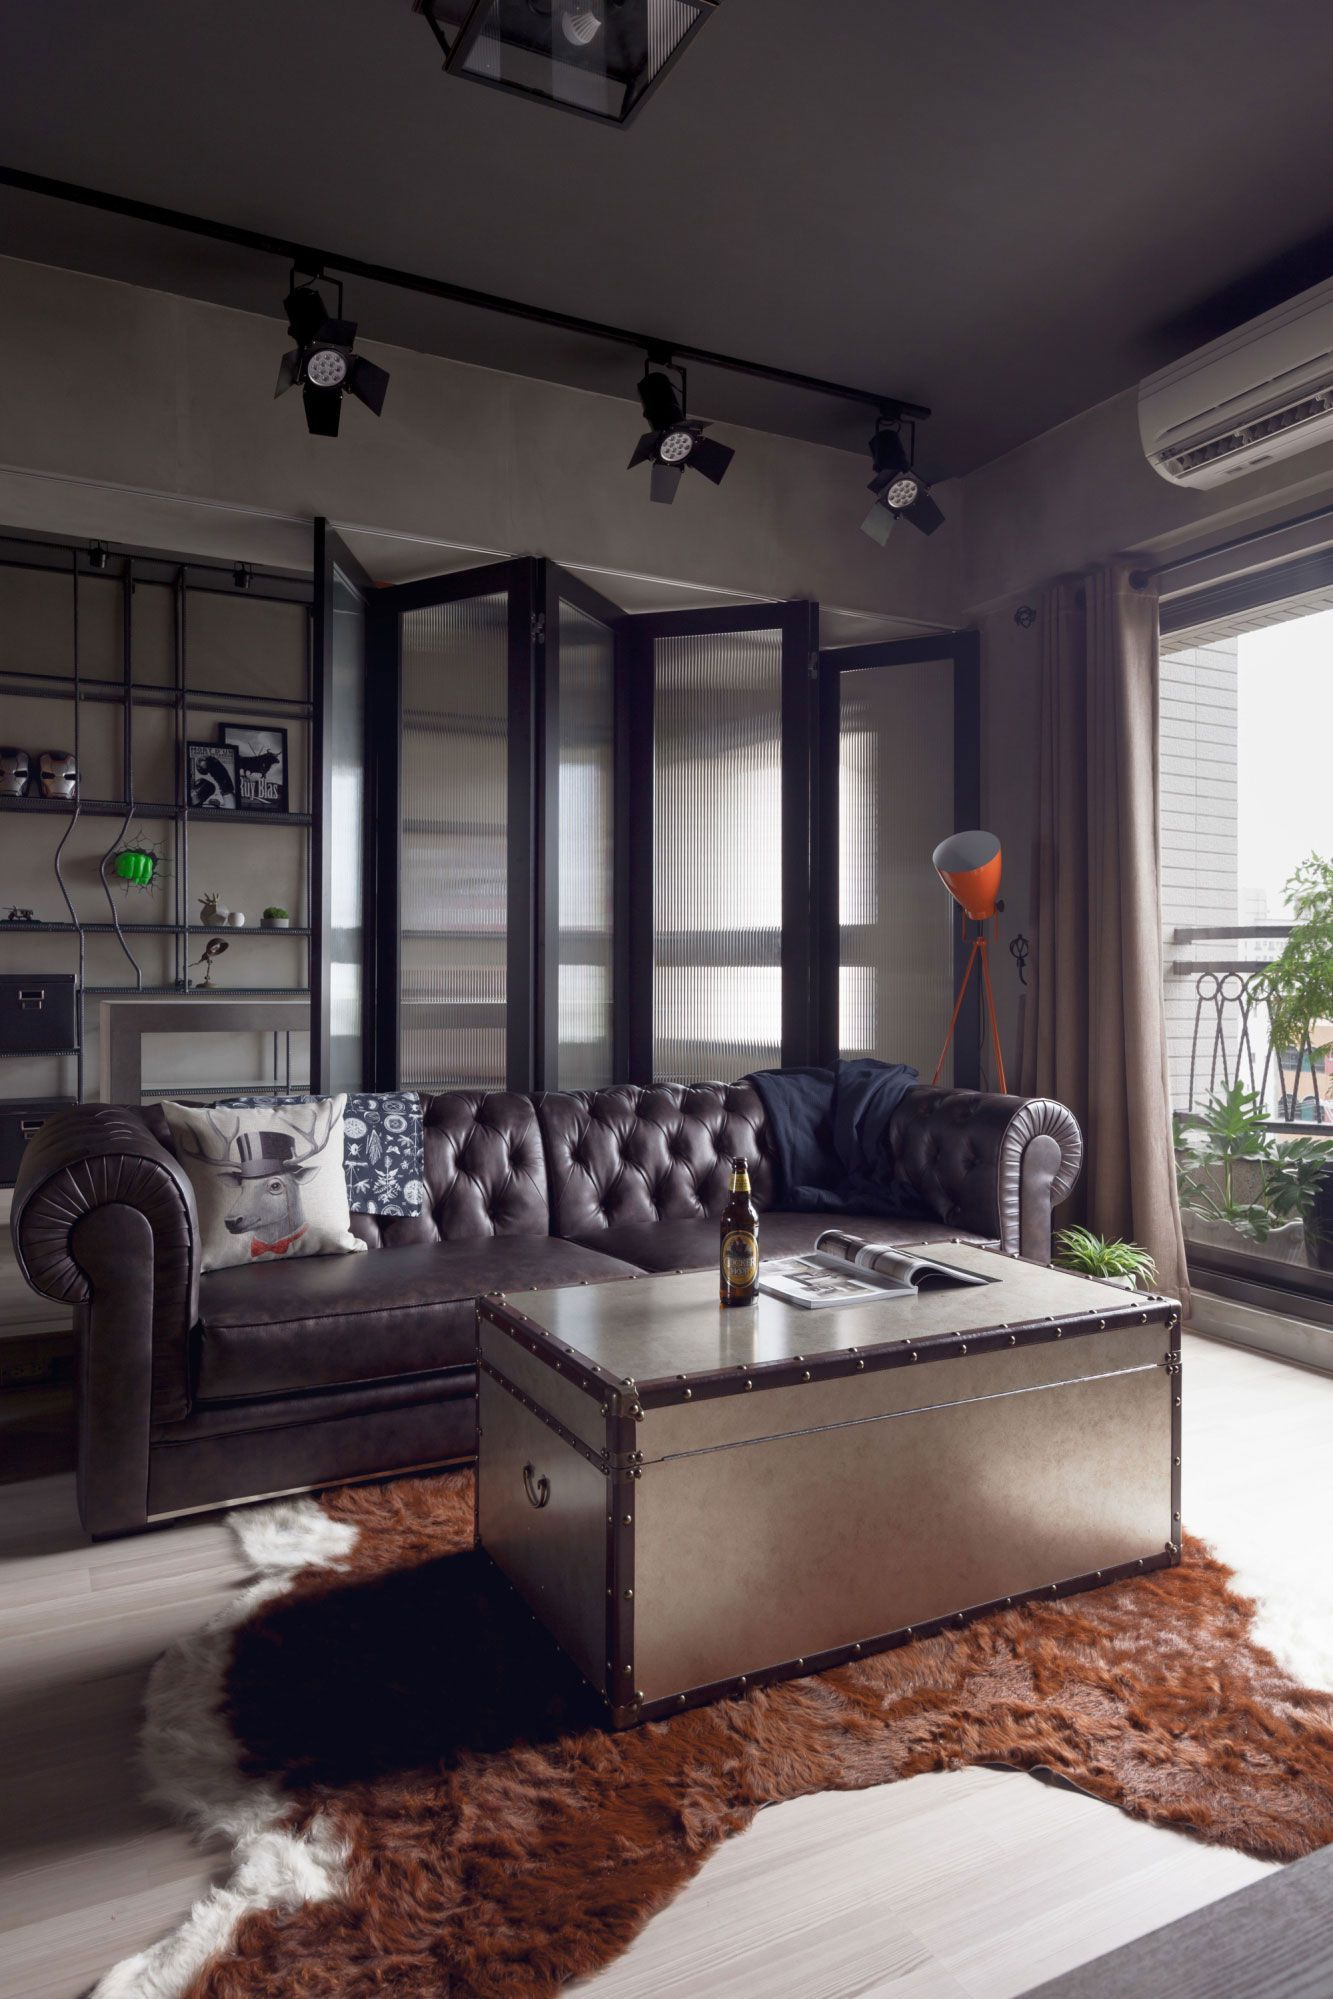 20 Bachelor Pad Apartments For The Modern Gentleman Industrial Style Living Room Rustic Living Room Rustic Industrial Living Room